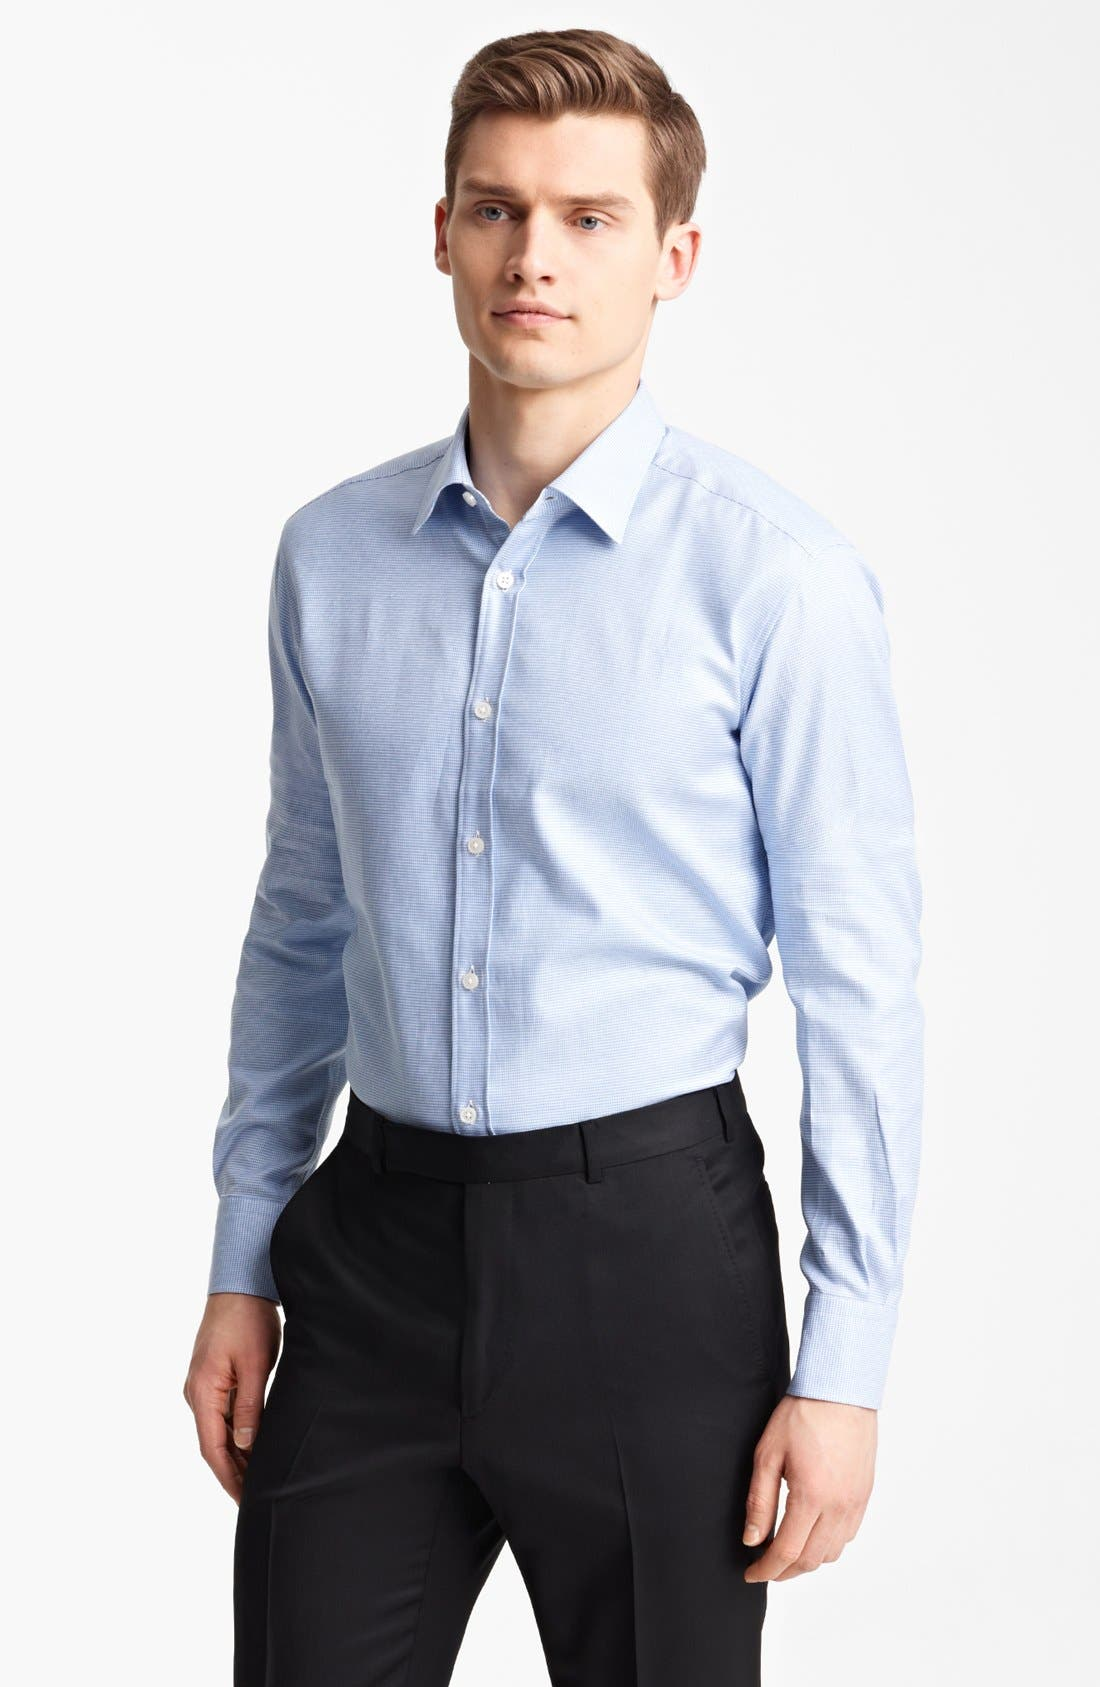 Alternate Image 1 Selected - Z Zegna Micro Houndstooth Cotton Dress Shirt